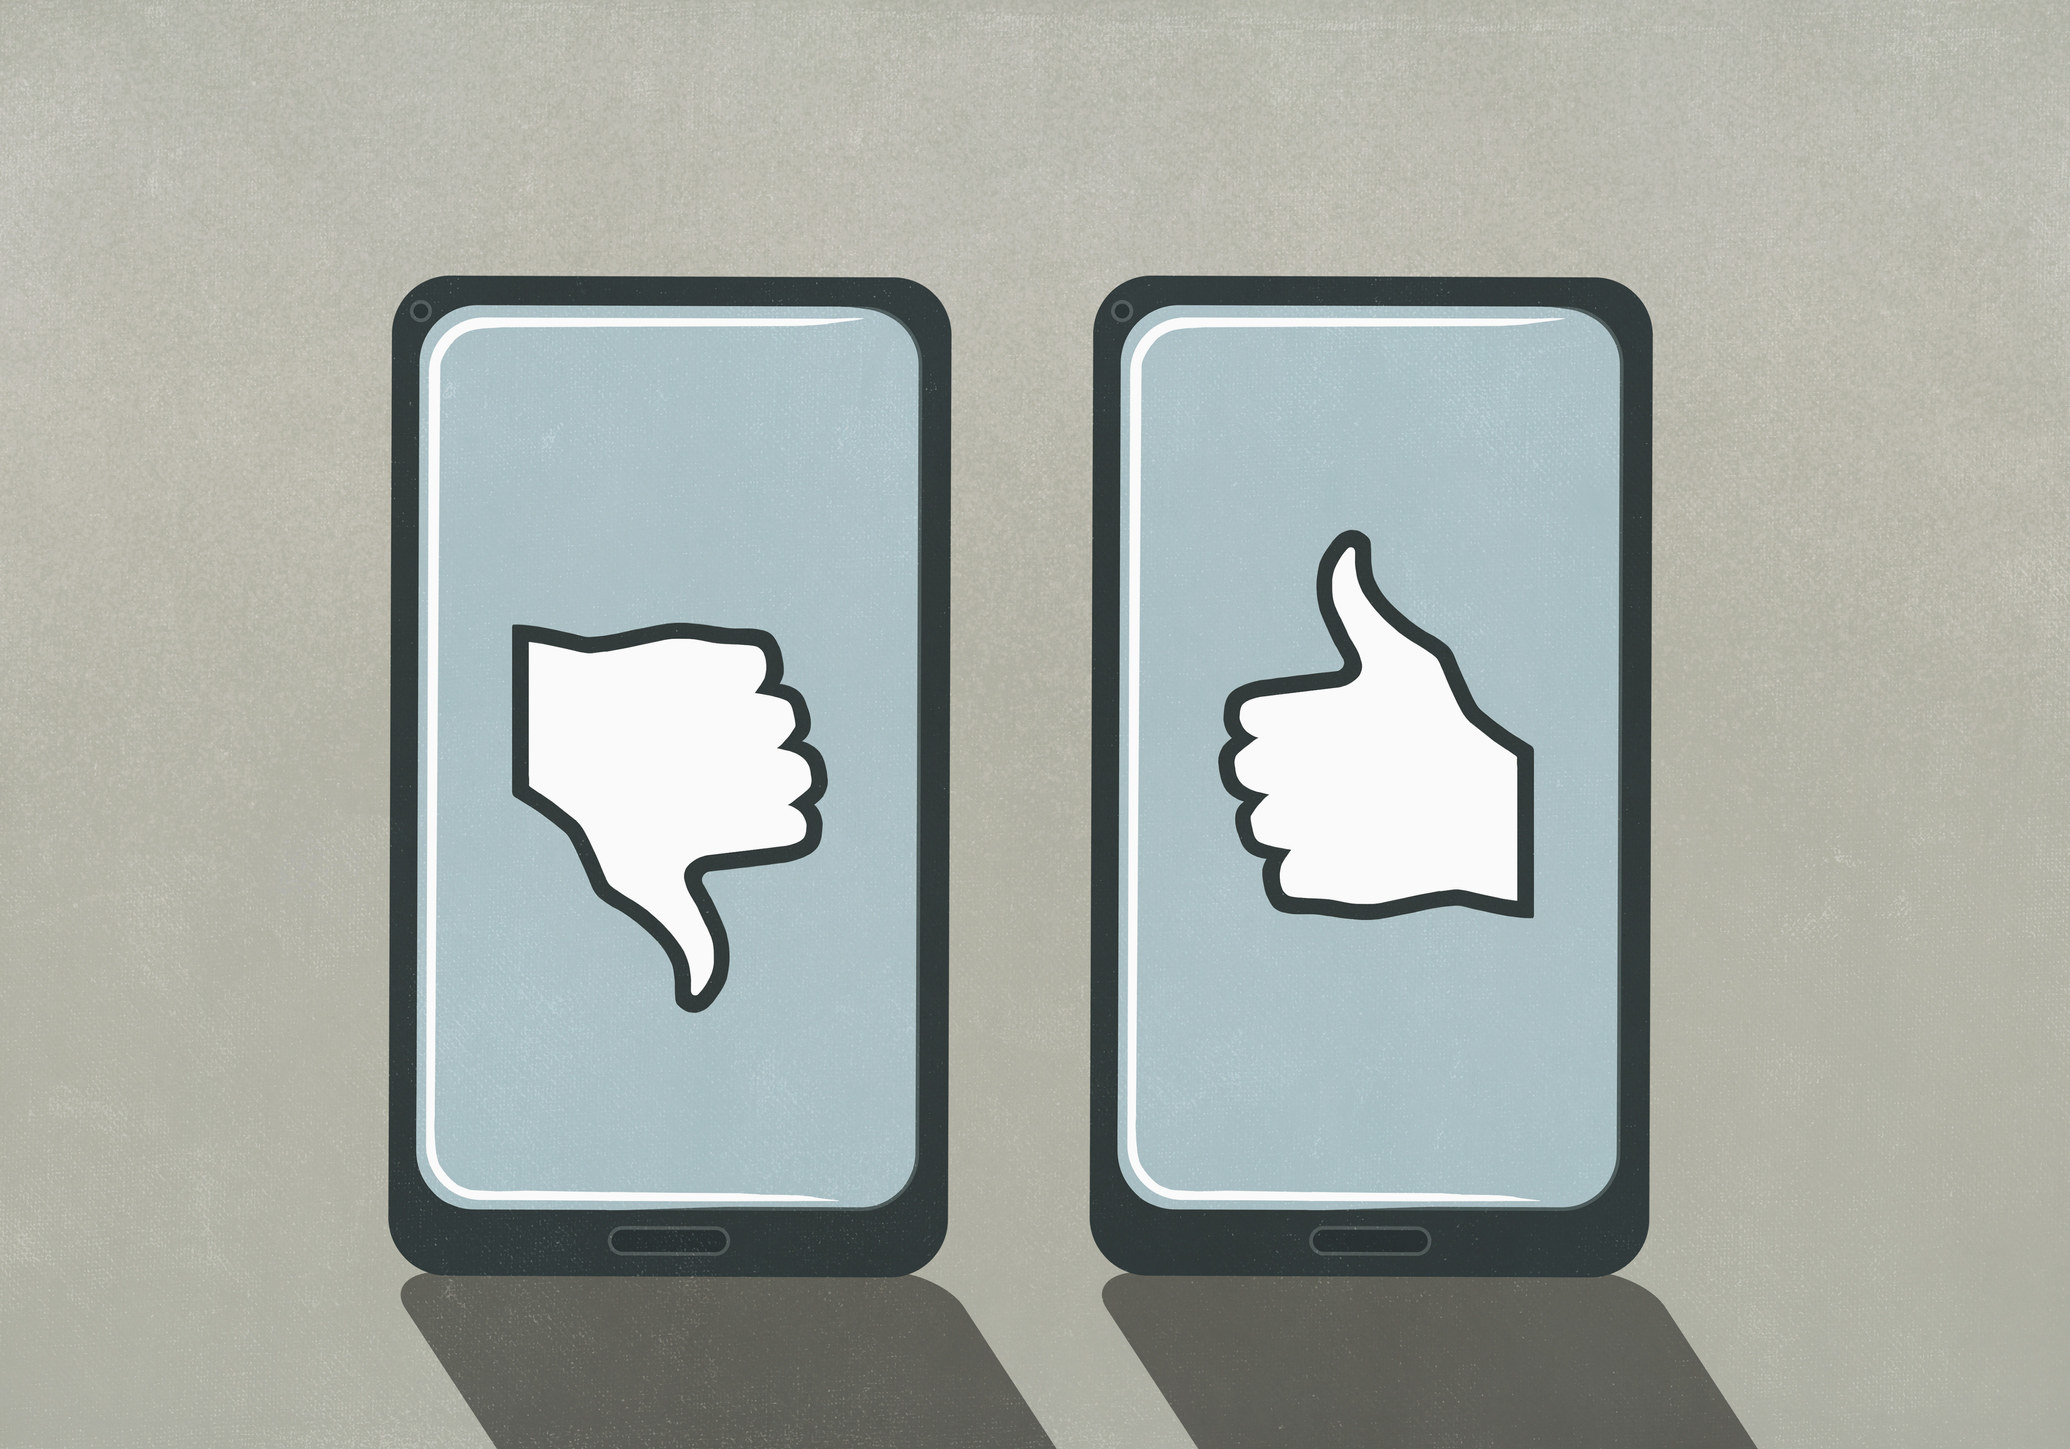 Drawing of two iPhones, one with a big thumbs down and one with a big thumbs up